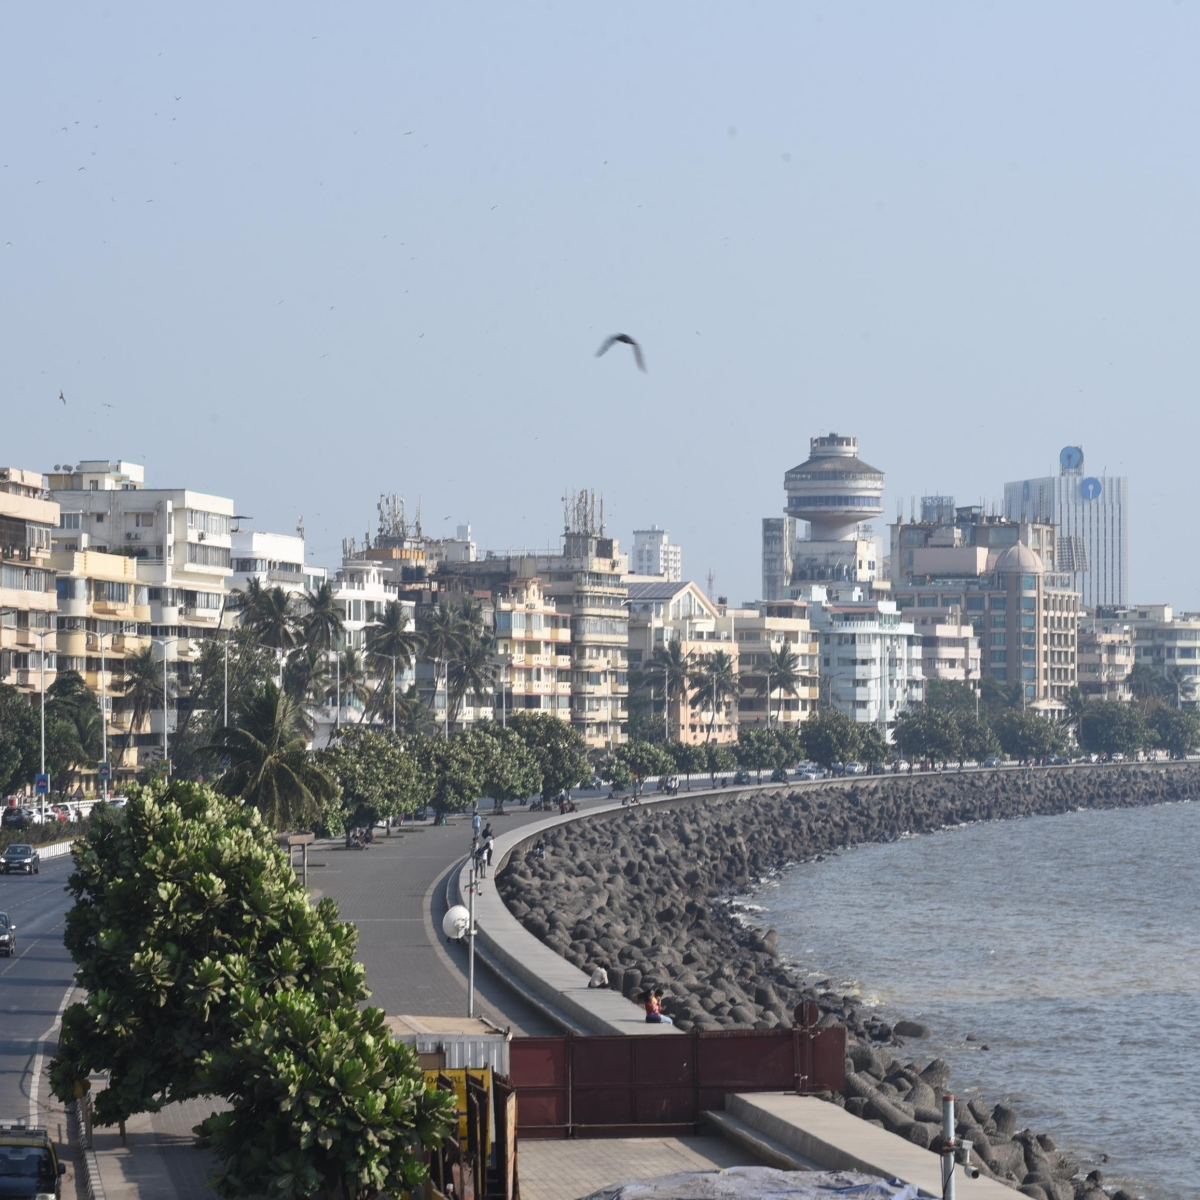 Coronavirus in Mumbai: Public spaces are changing